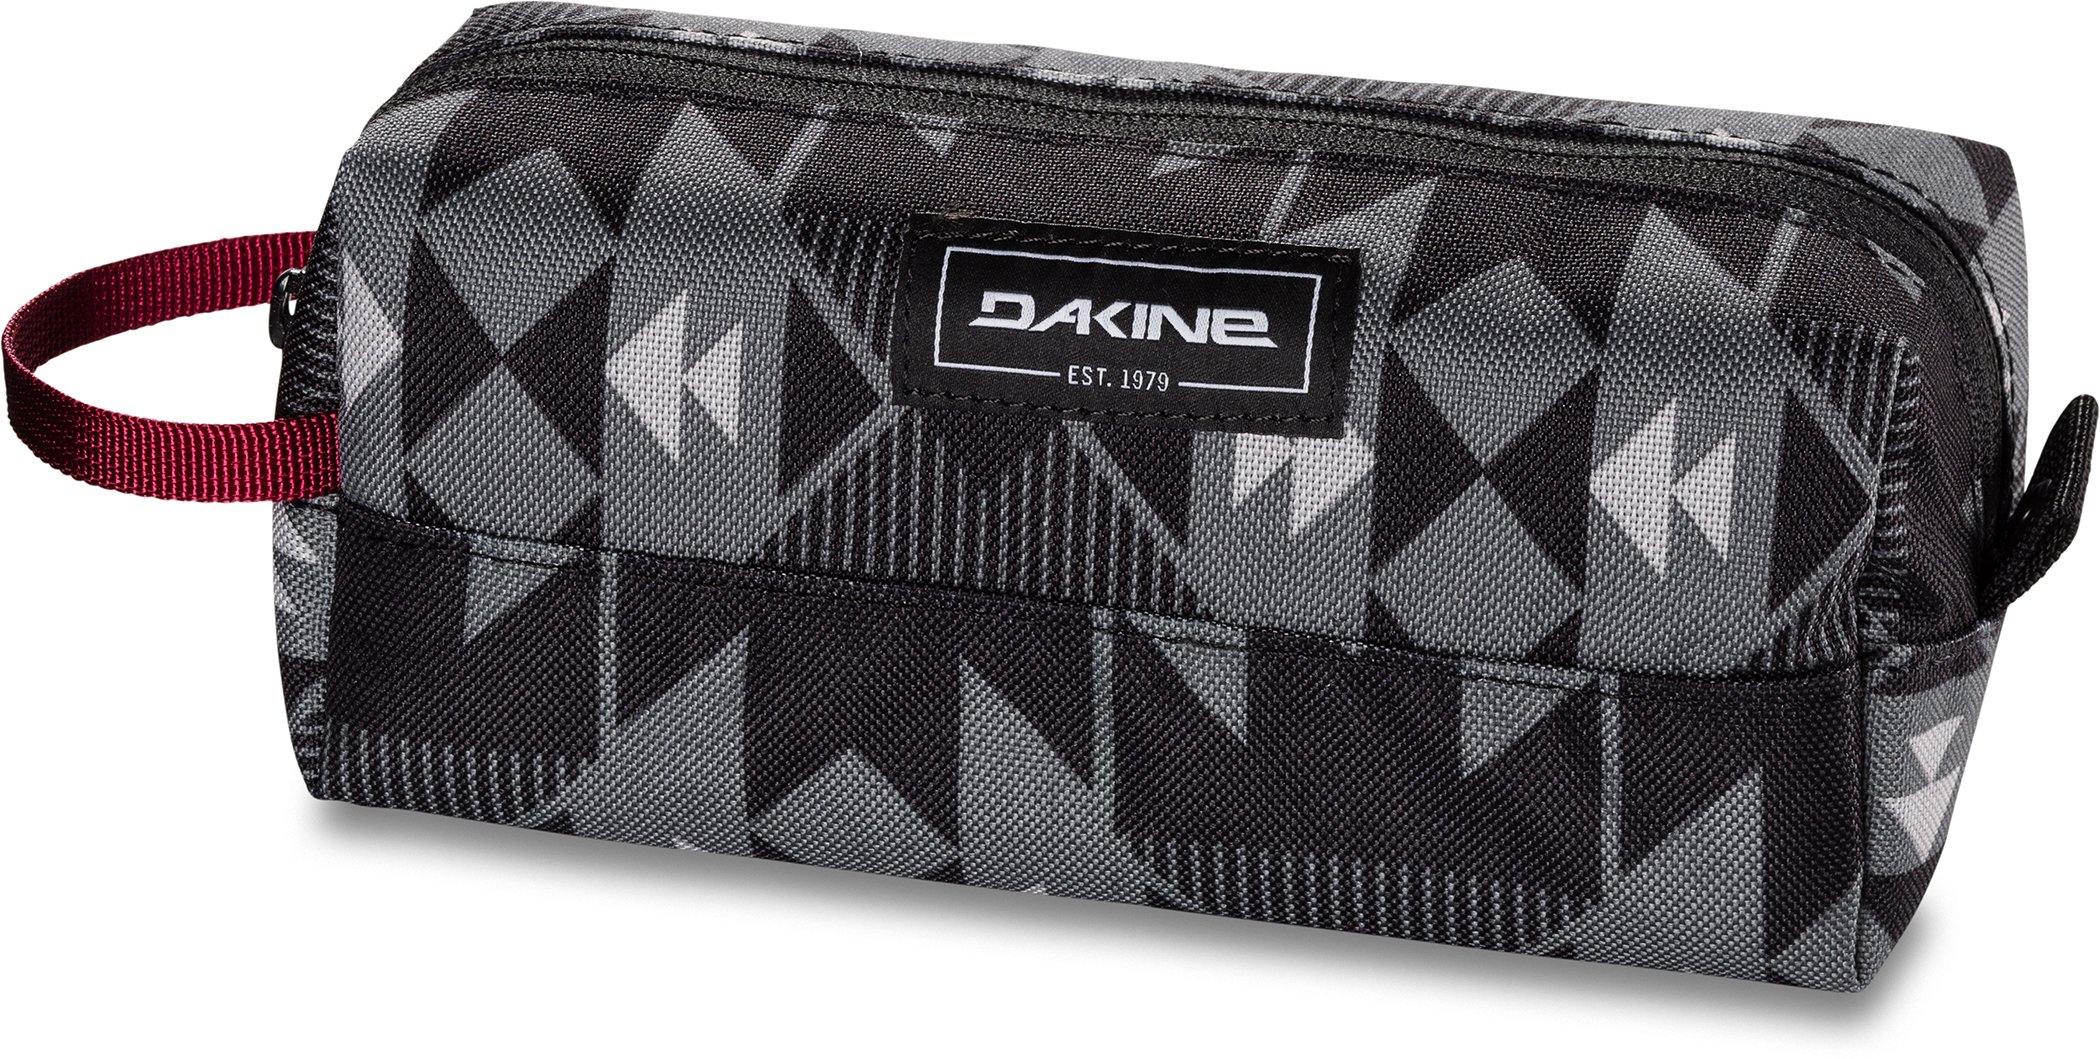 Dakine 610934175745 Accessory Case, Fireside II, One Size